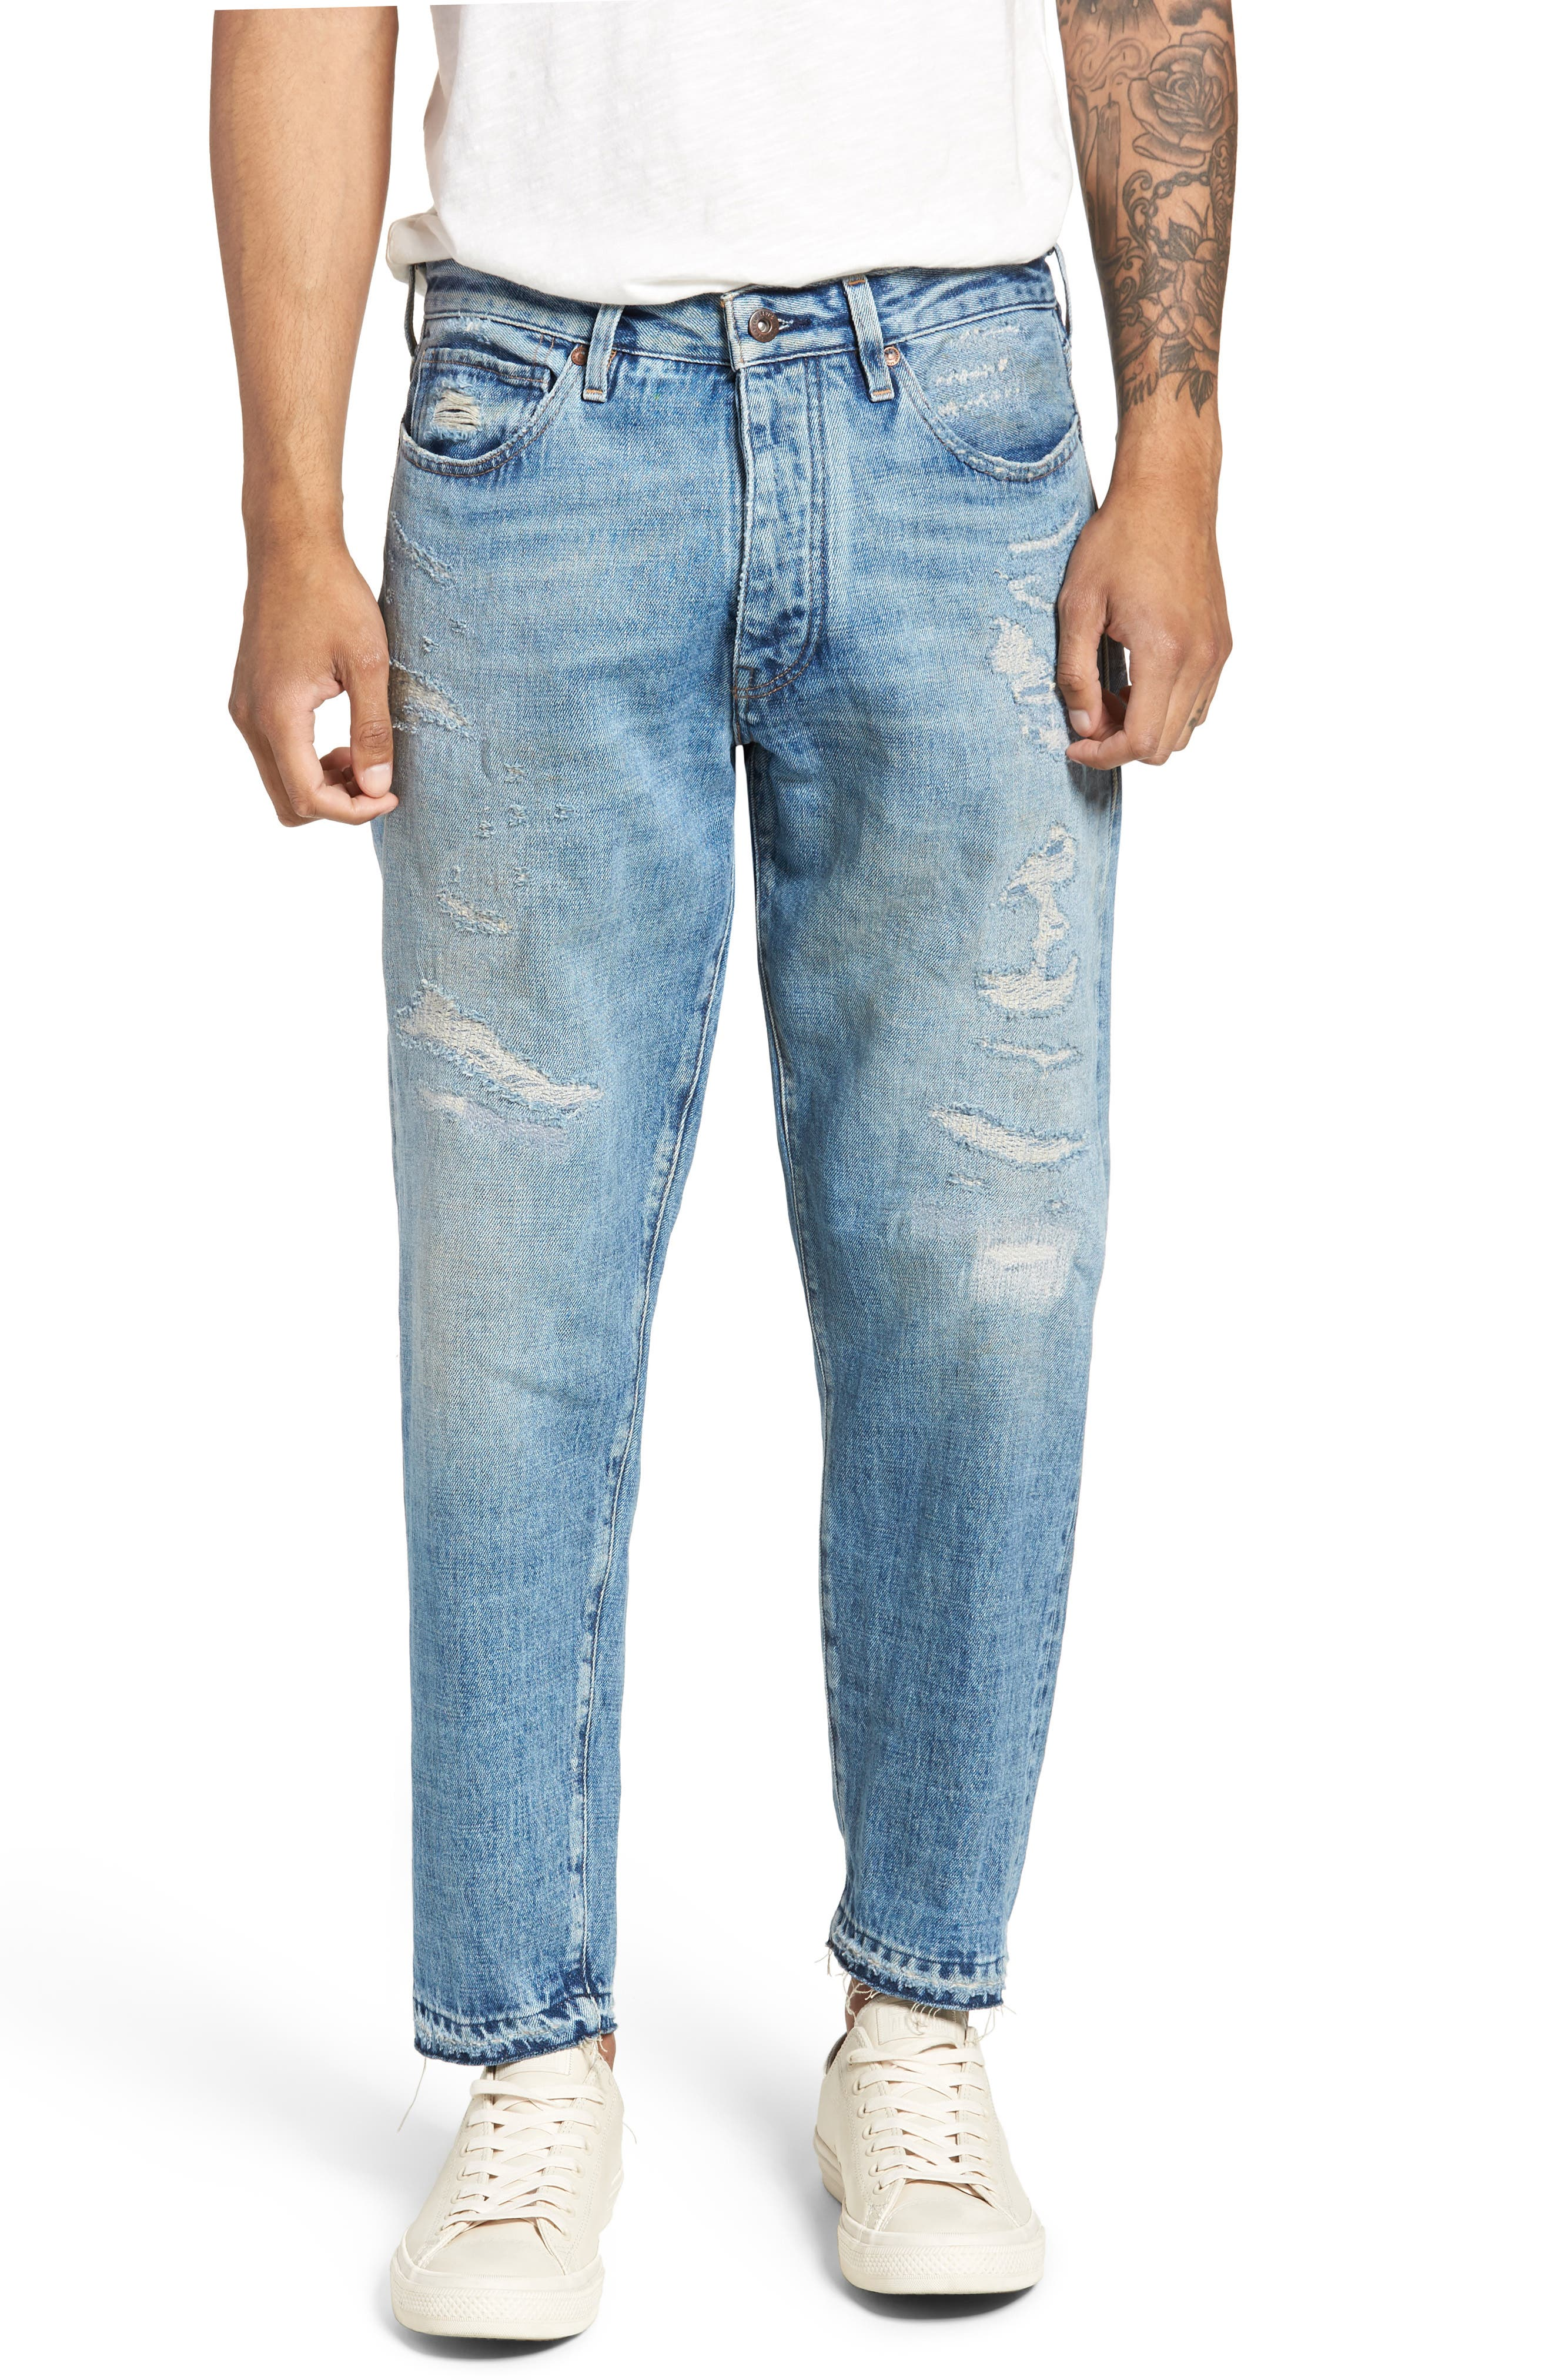 Draft Taper Standard Fit Jeans,                         Main,                         color, Banzai Pipeline